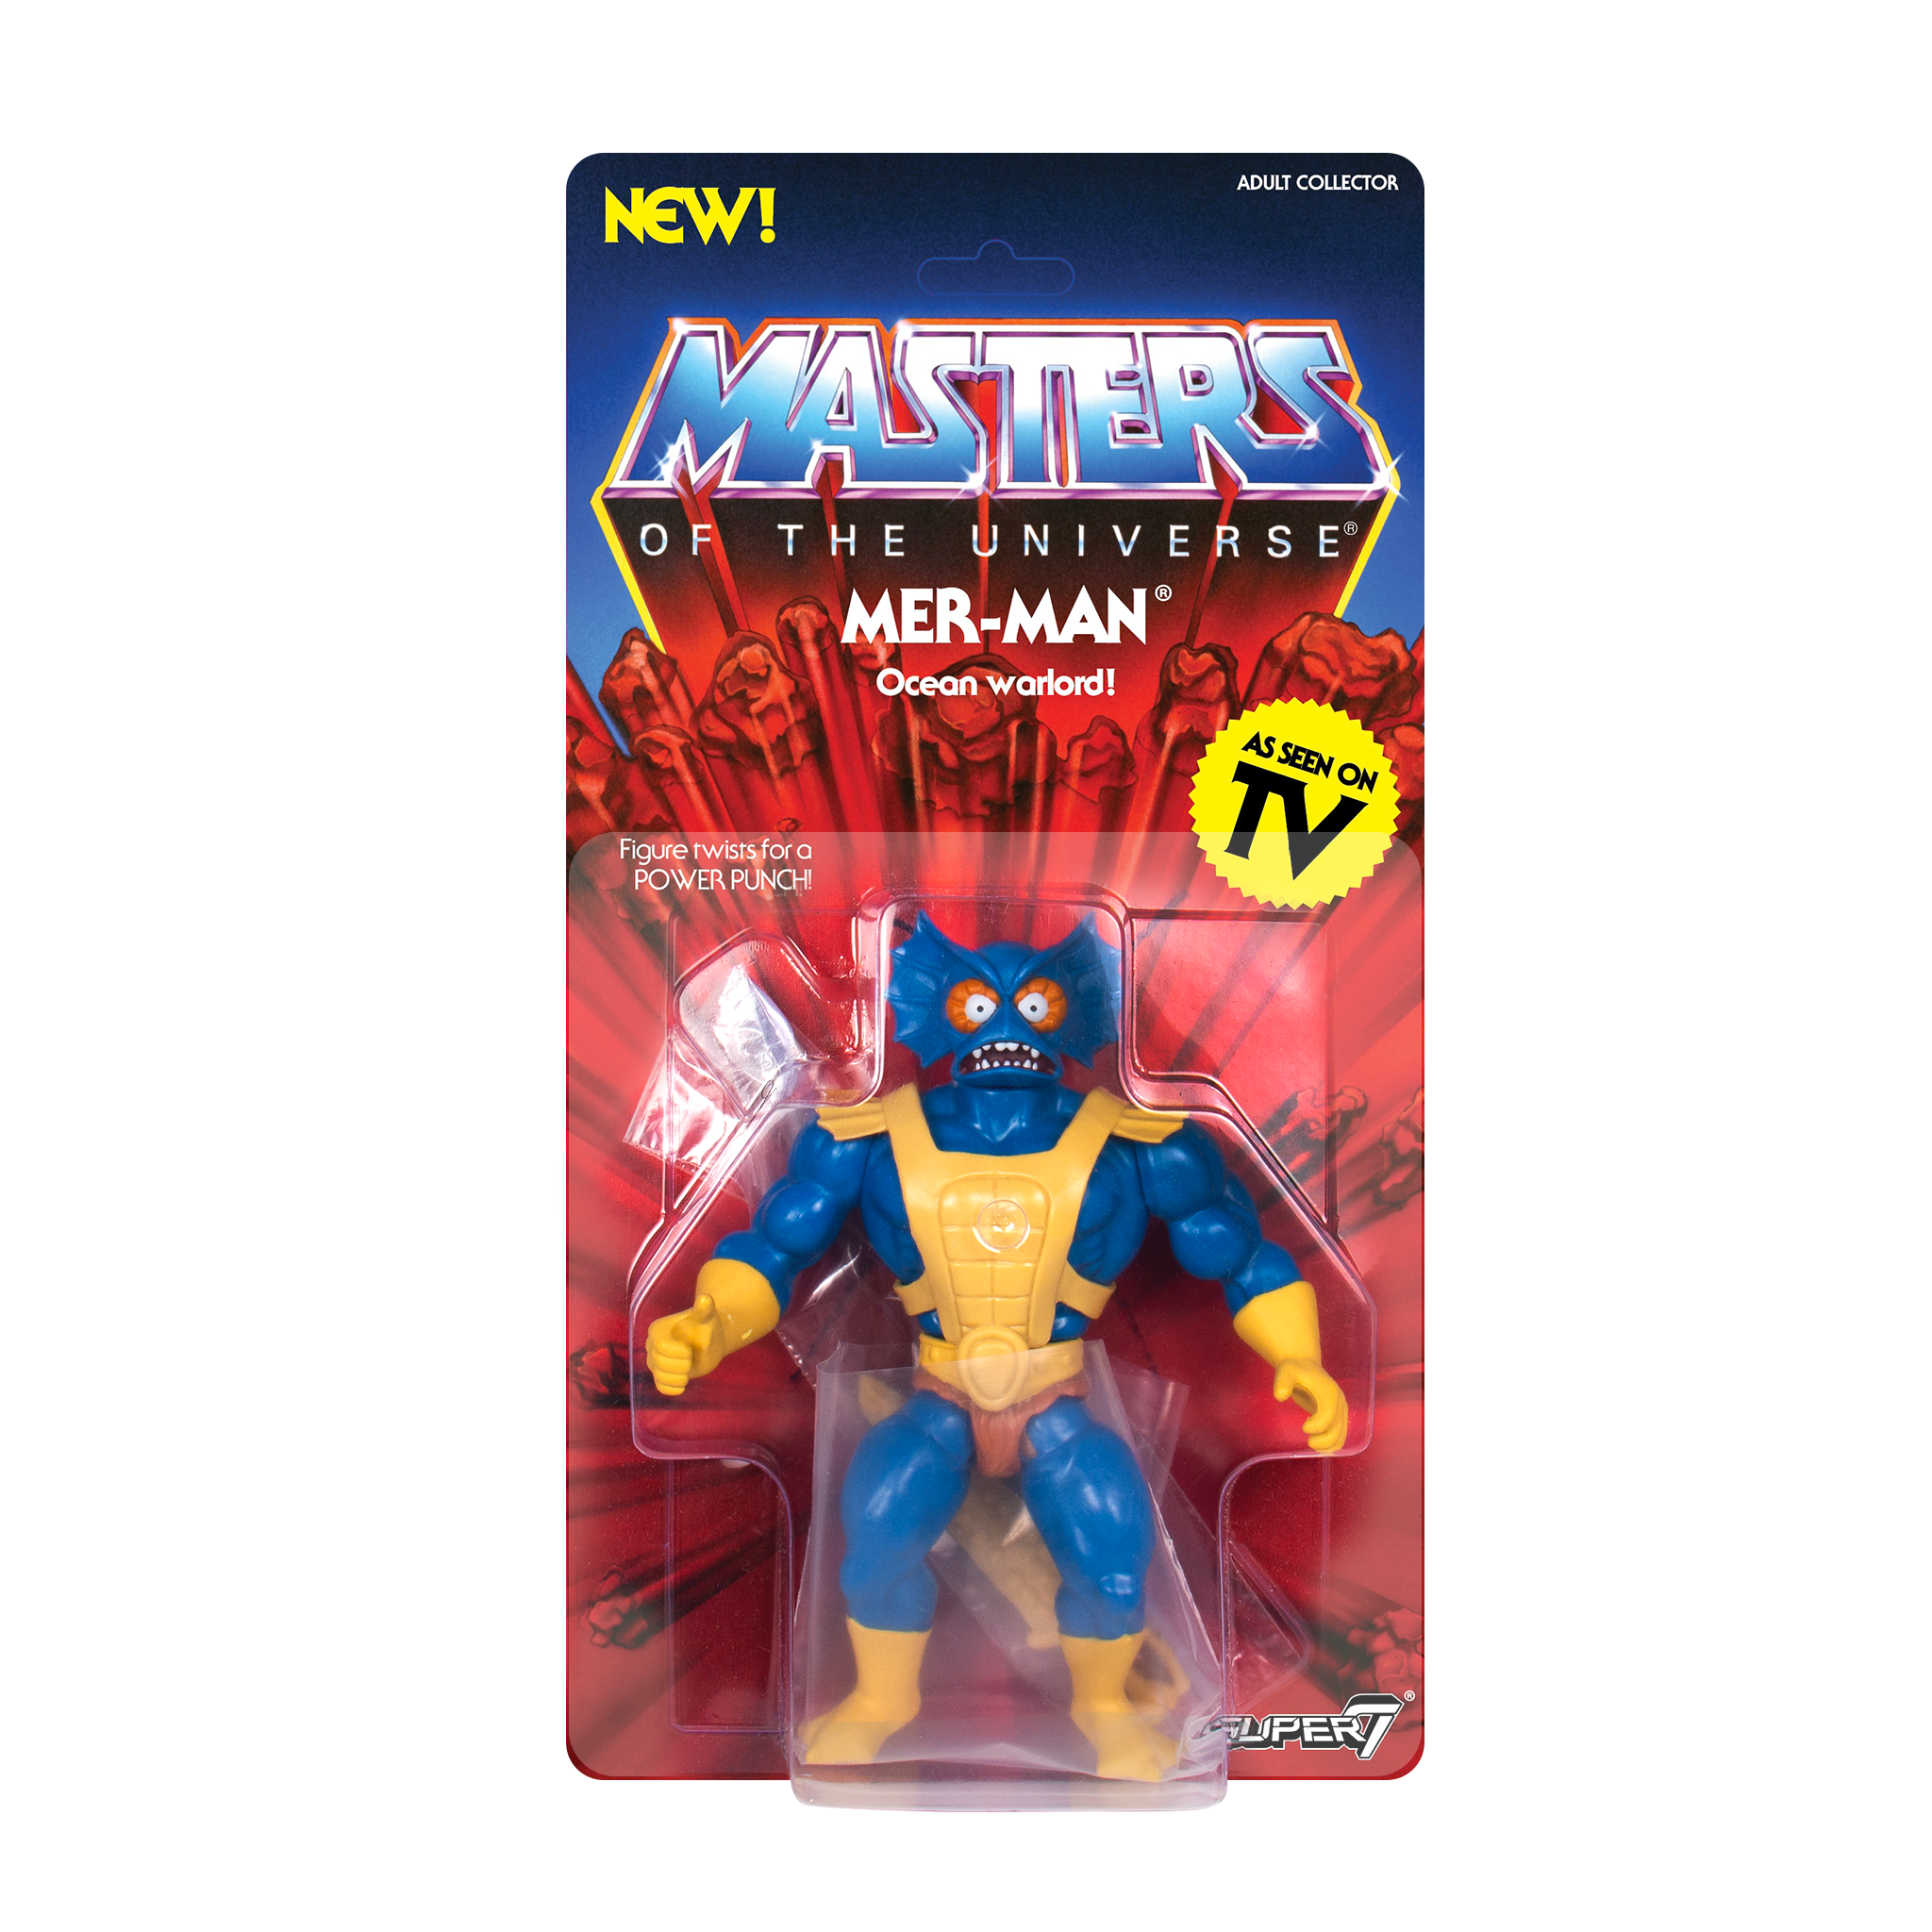 Masters of the Universe (Vintage Collection): MERMAN